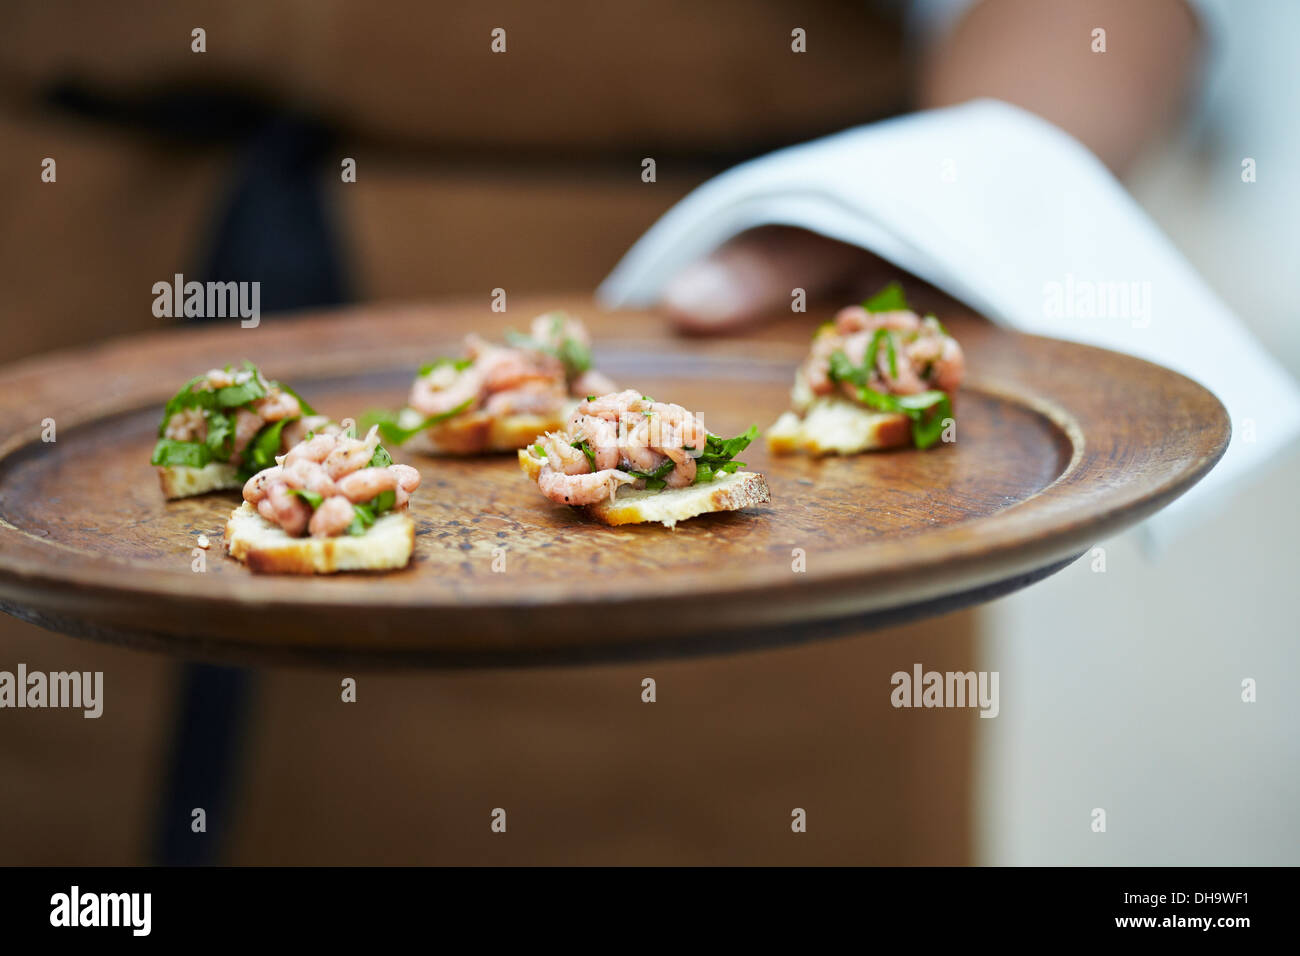 Close-up of a person serving canapés from a stylish wooden platter. - Stock Image